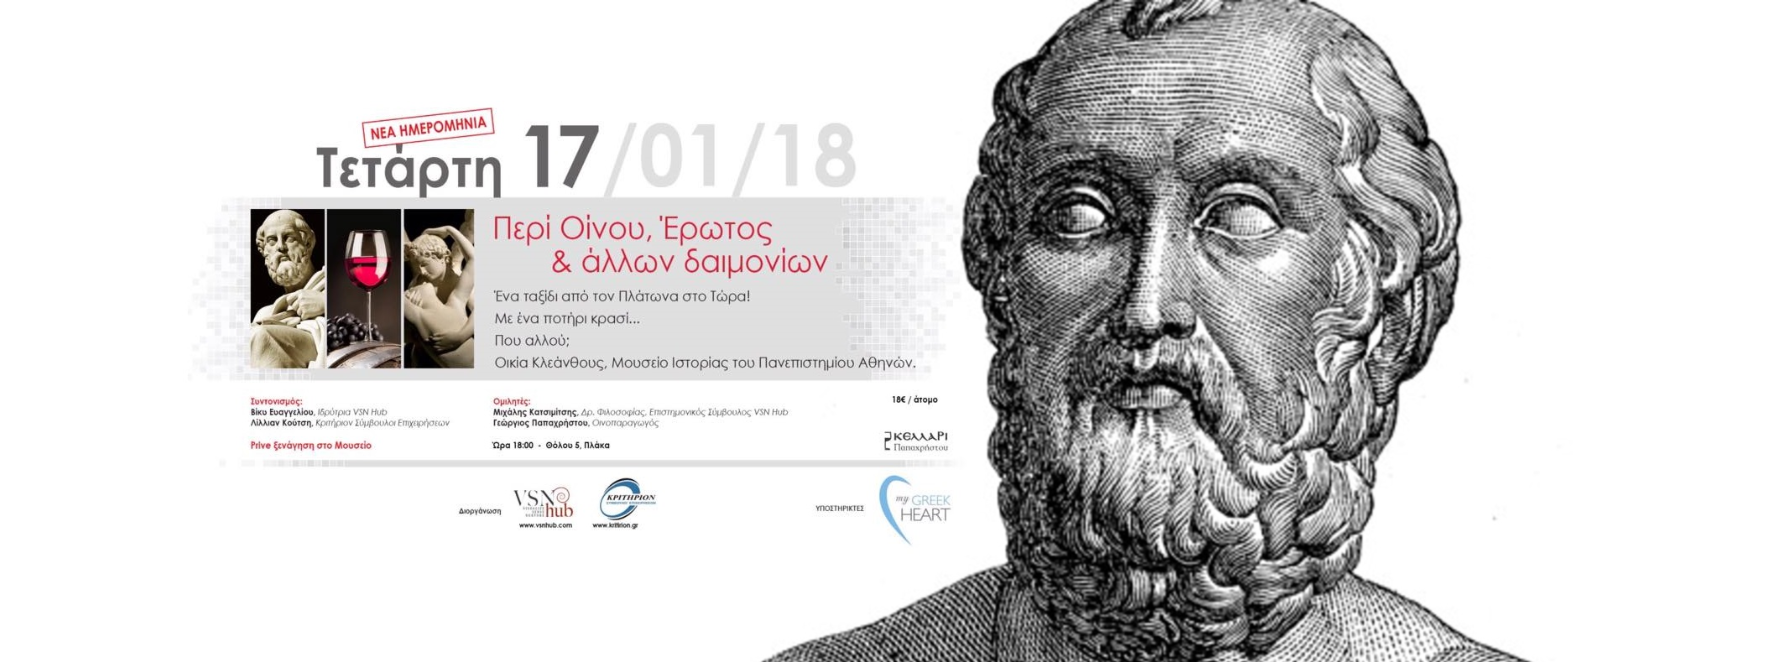 Plato Philosophical Open Dialogue at Athens University Museum